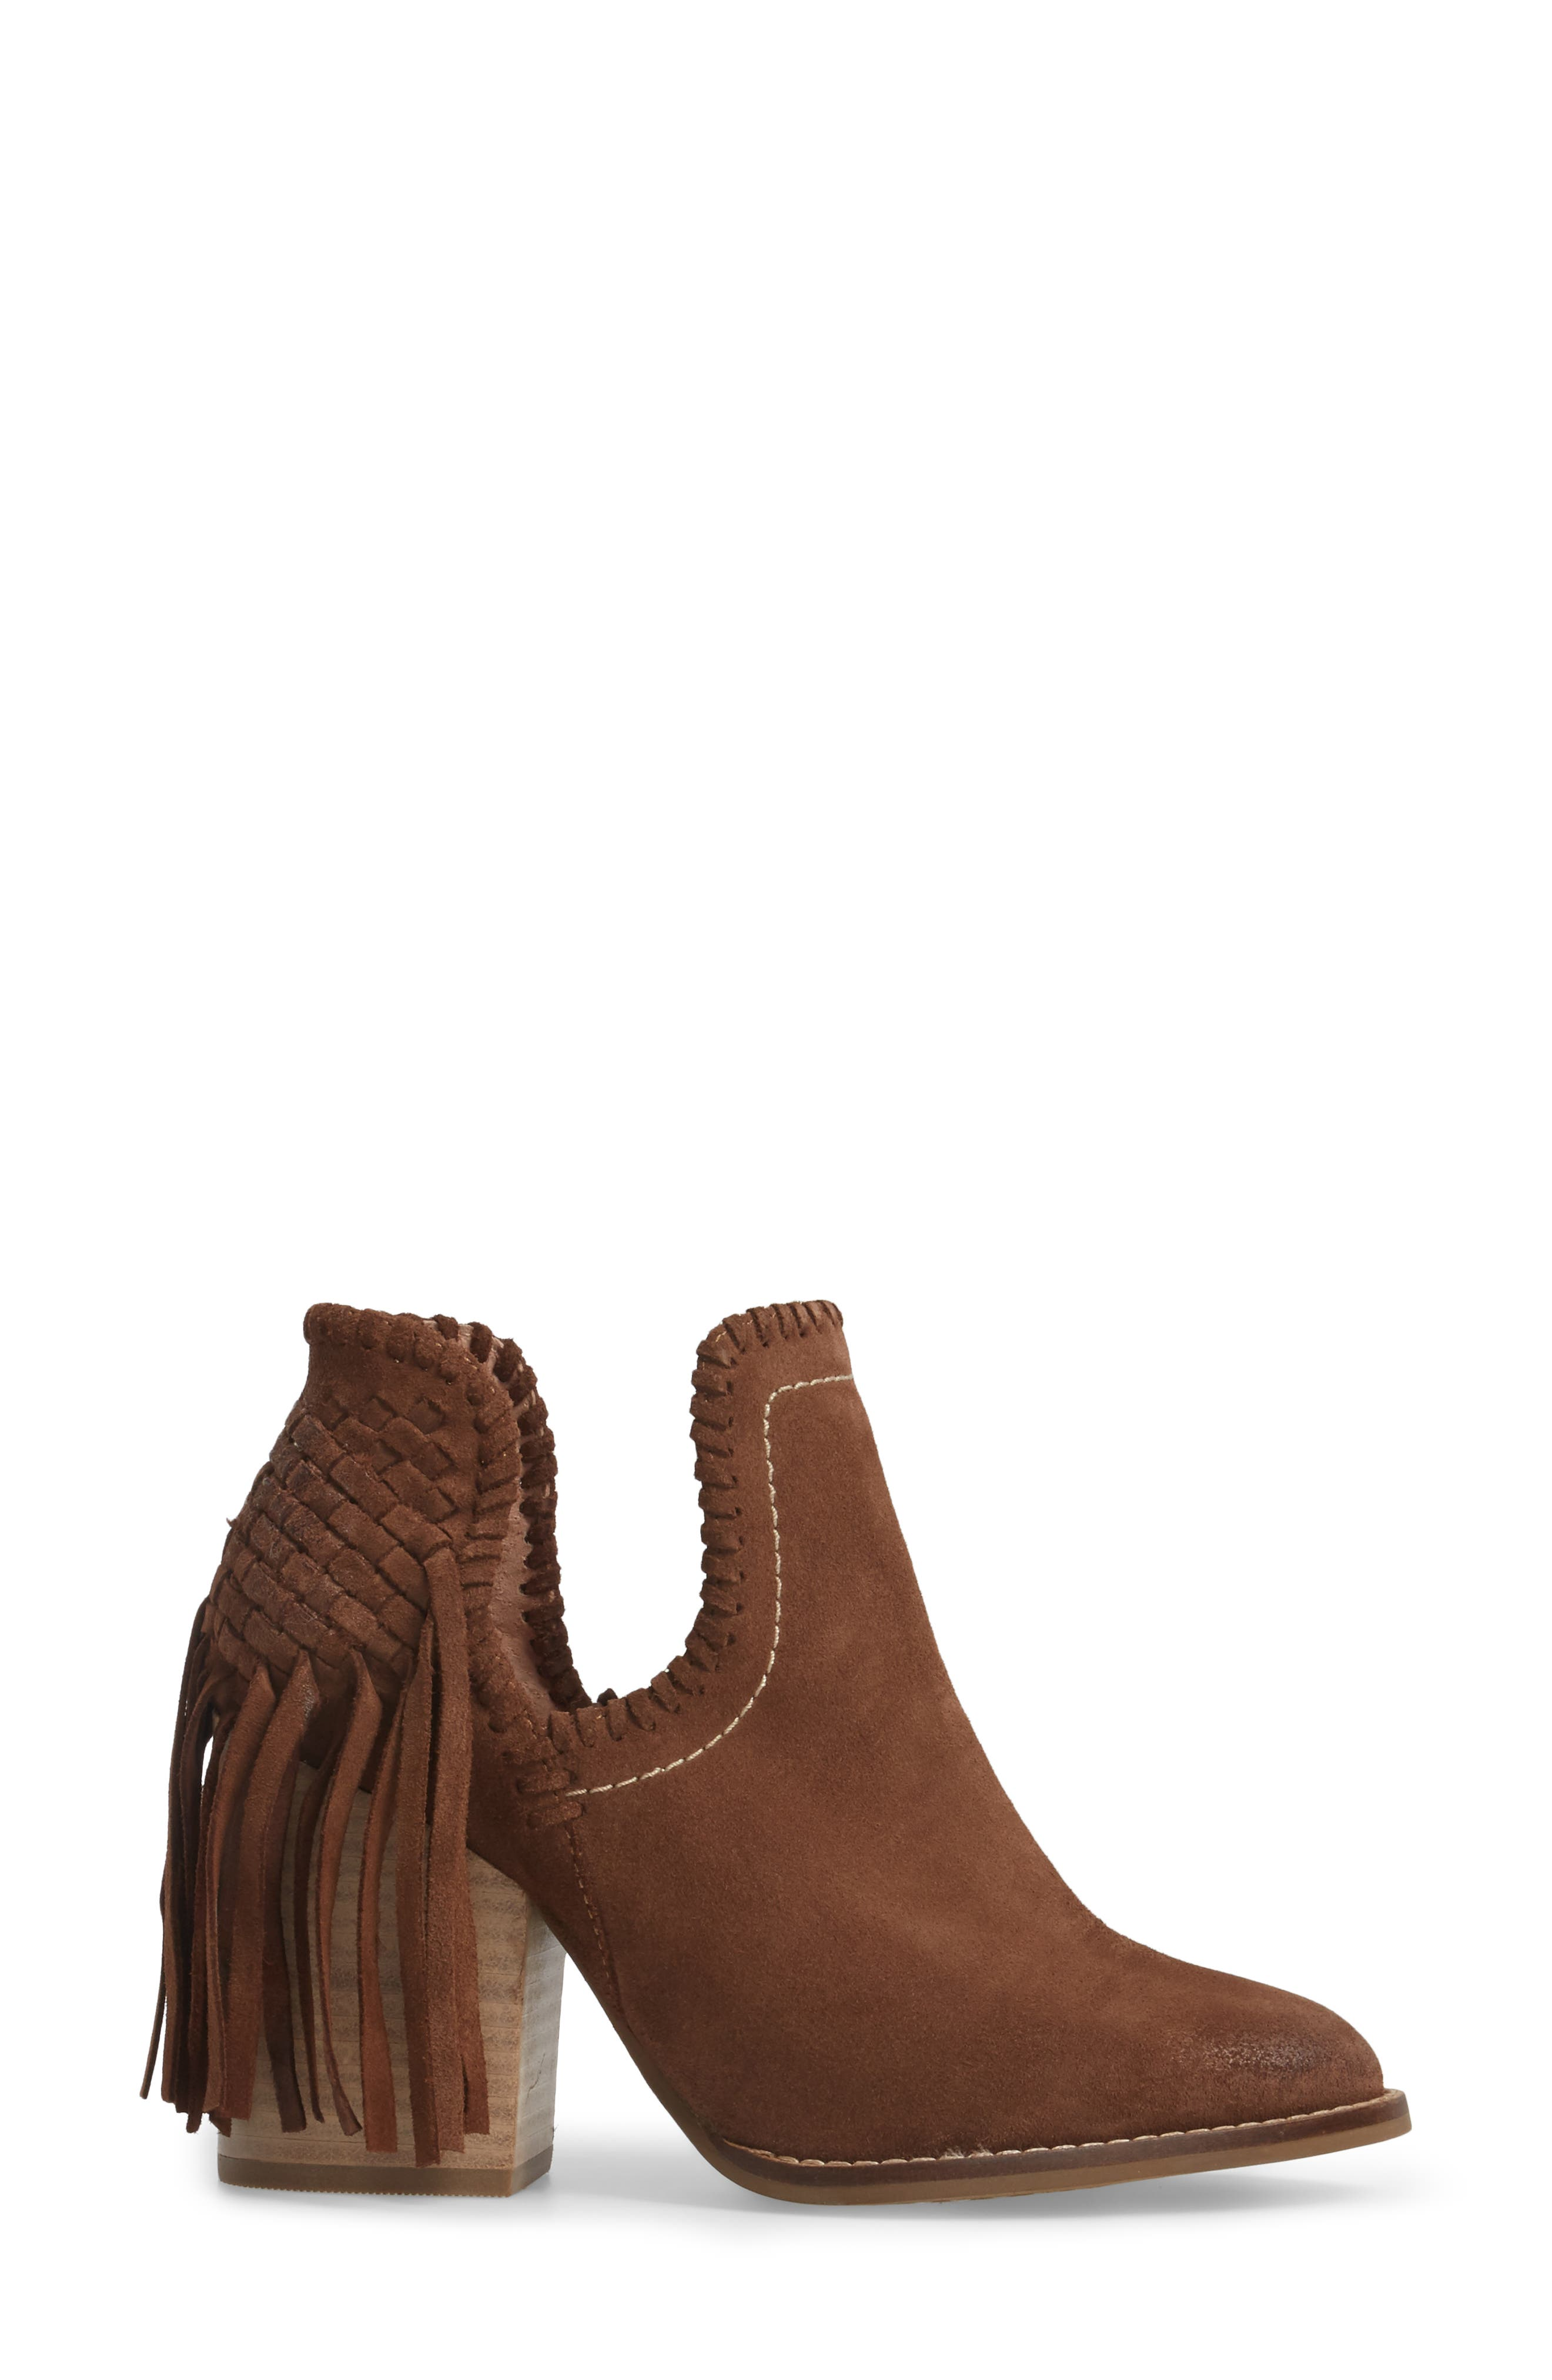 Unbridled Lily Bootie,                             Alternate thumbnail 3, color,                             Whiskey Suede